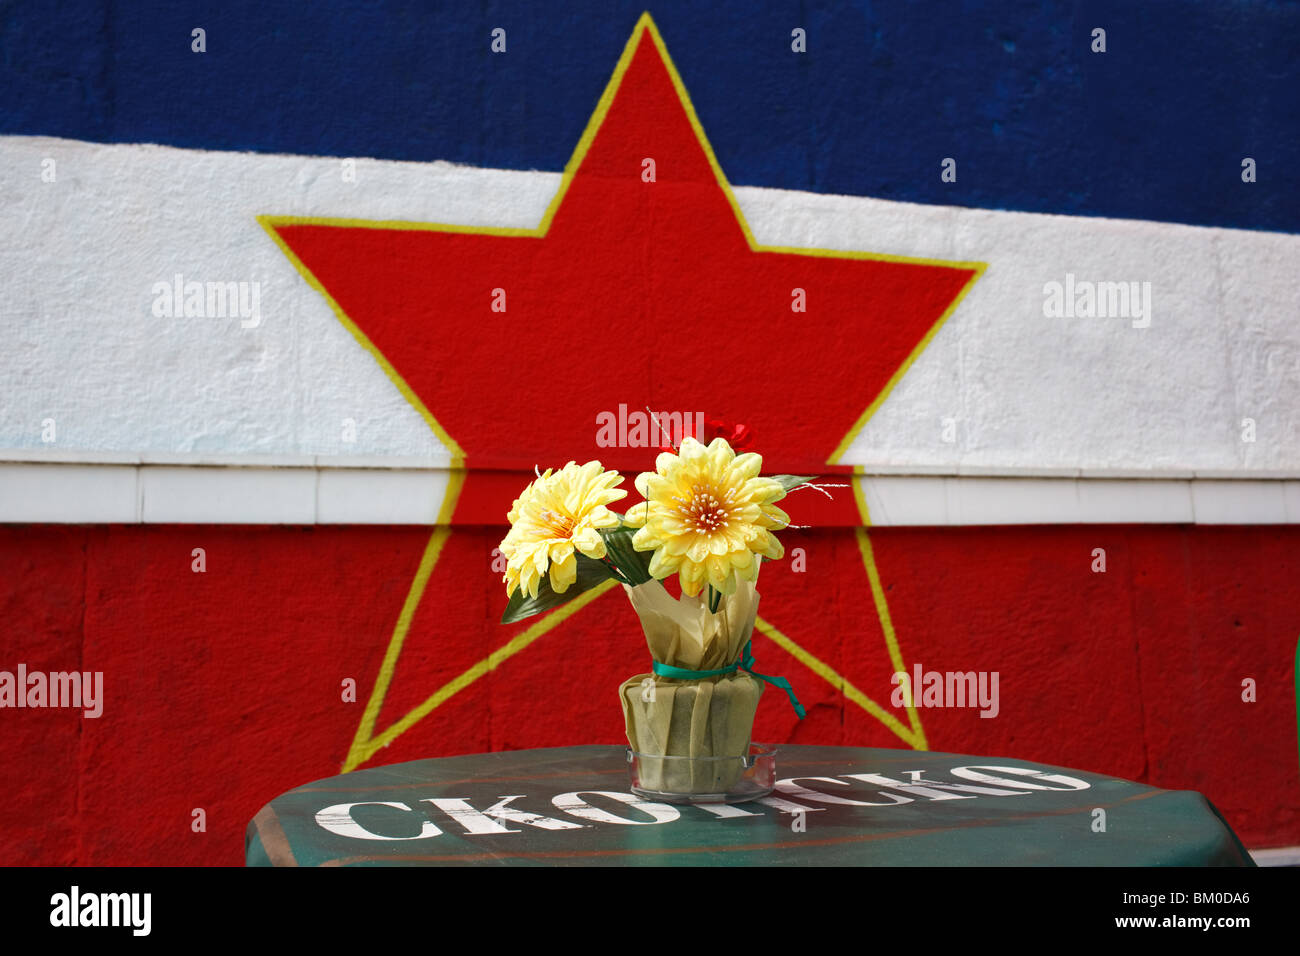 Restaurant table with a former Yugoslavia flag painted on the wall in Skopje, Macedonia. - Stock Image